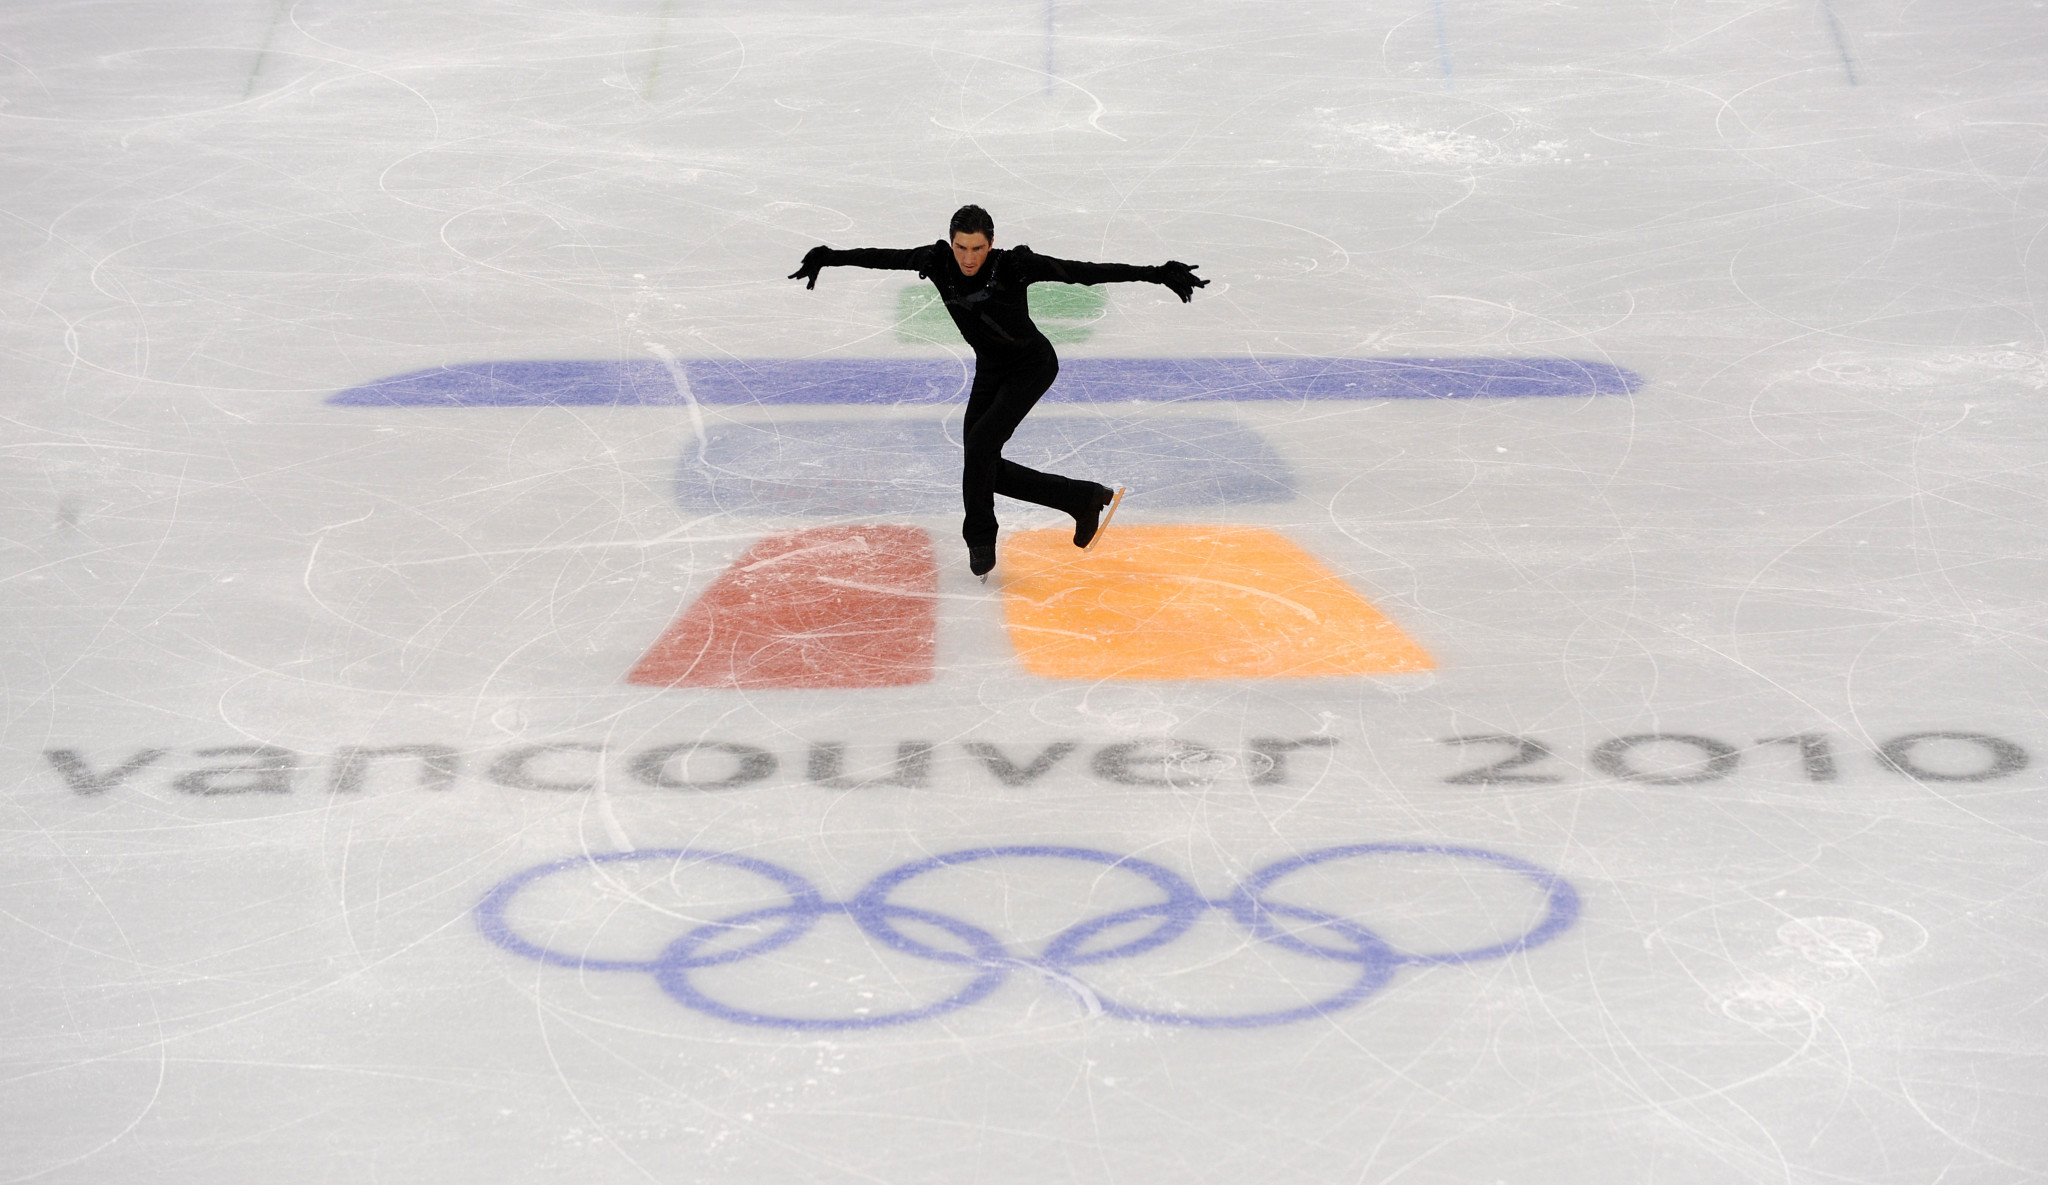 Vancouver 2010 anniversary celebrations to support next generation of athletes